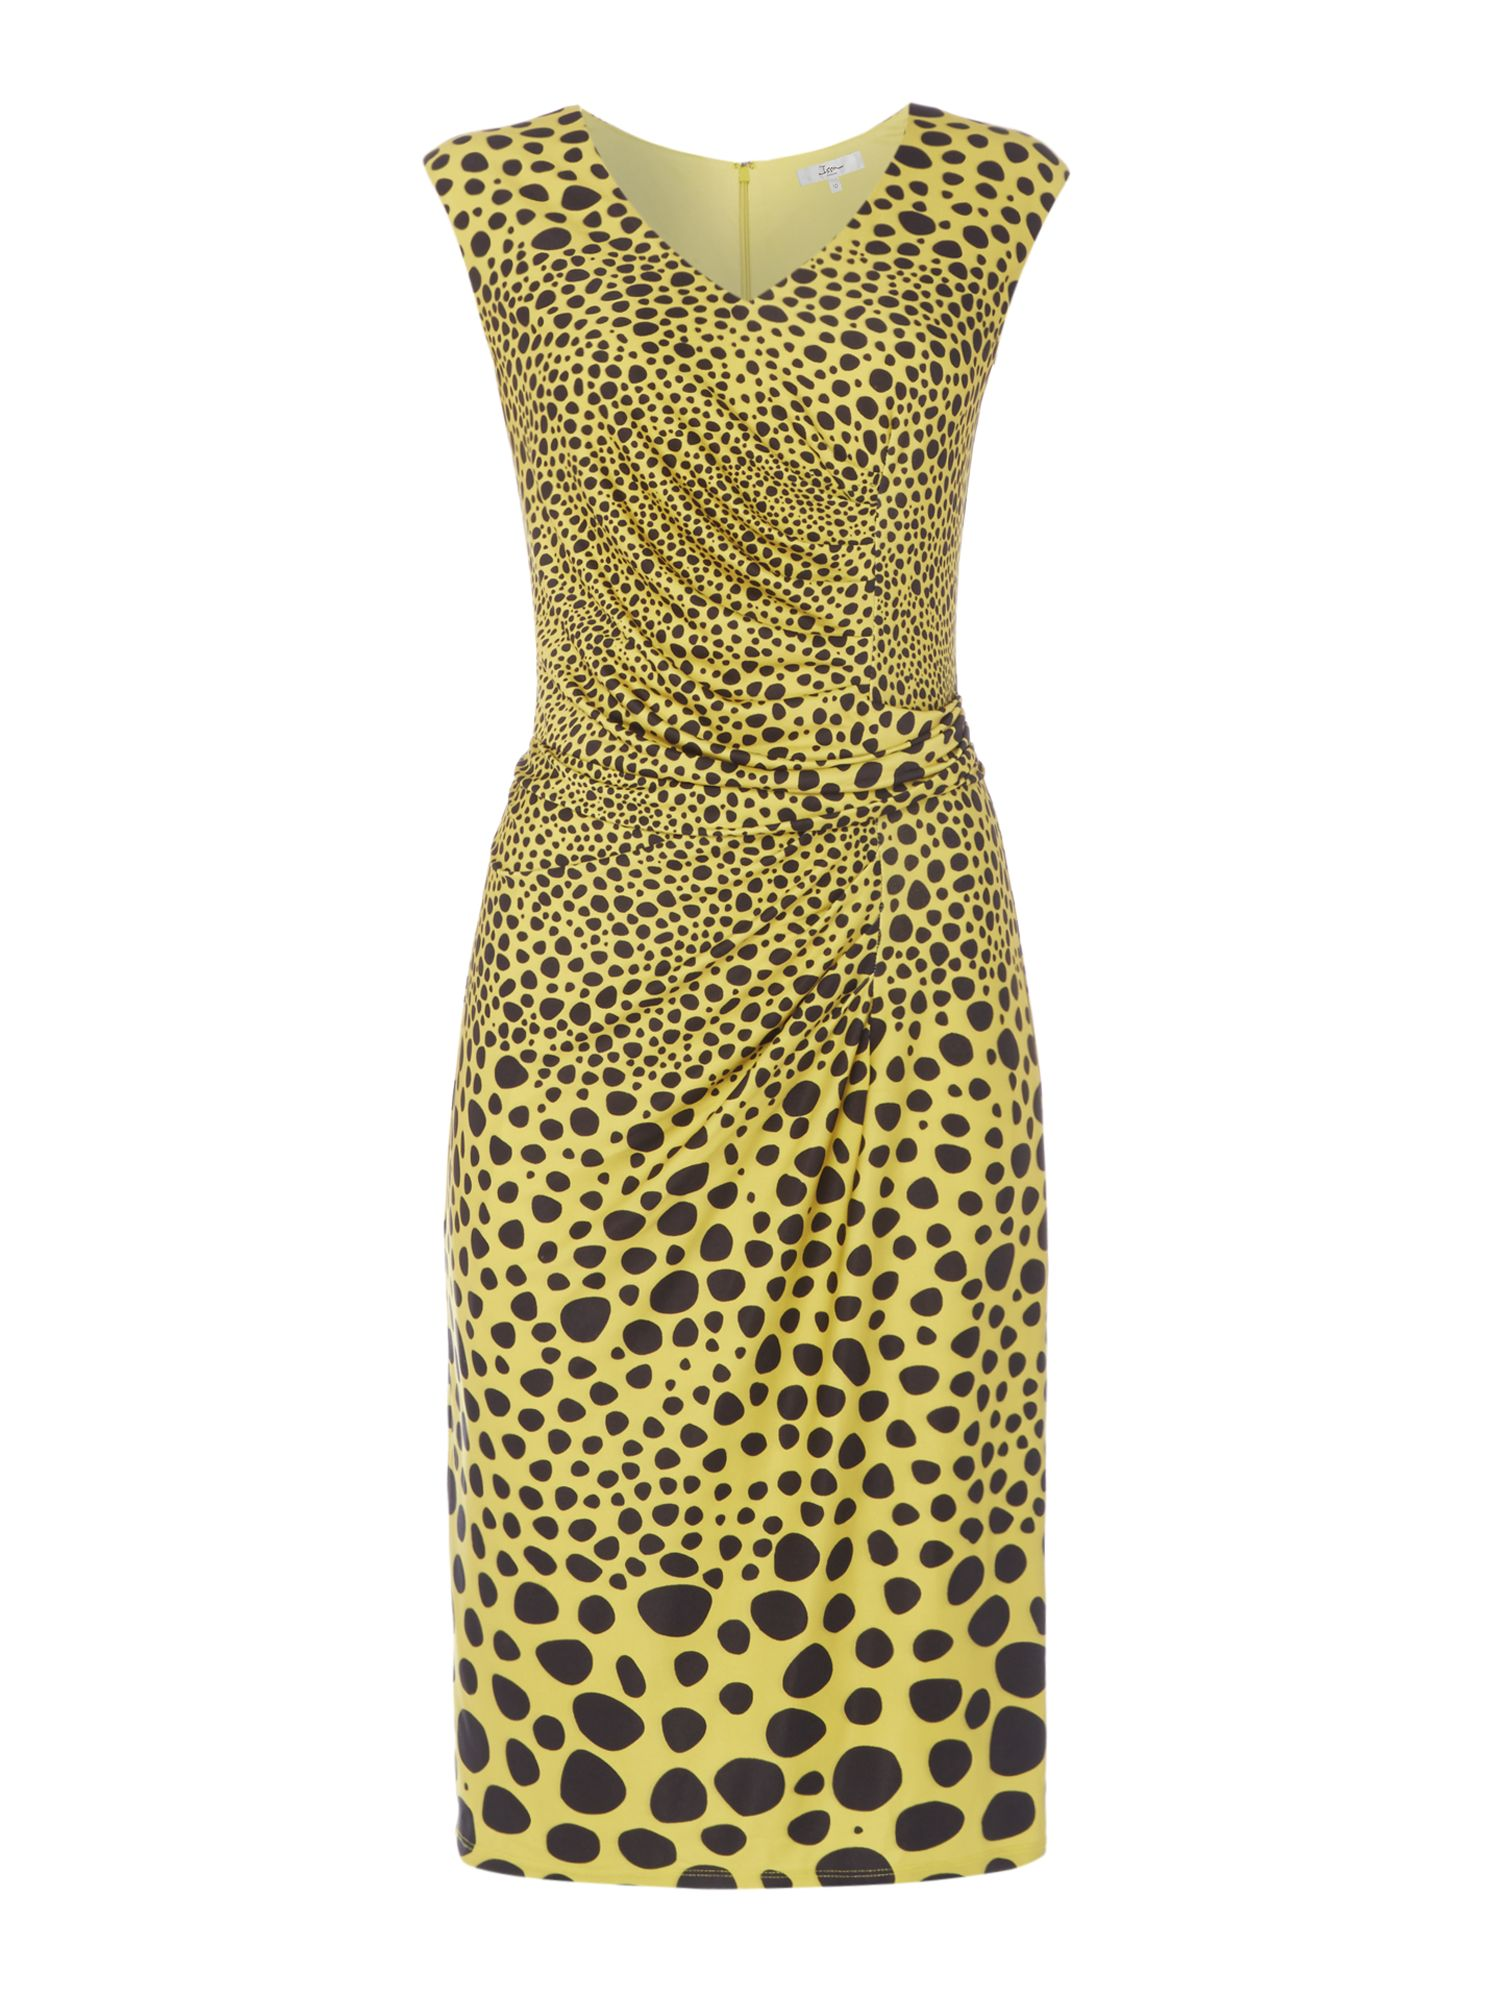 ISSA Charlotte Printed Ruch Detail Dress, Yellow